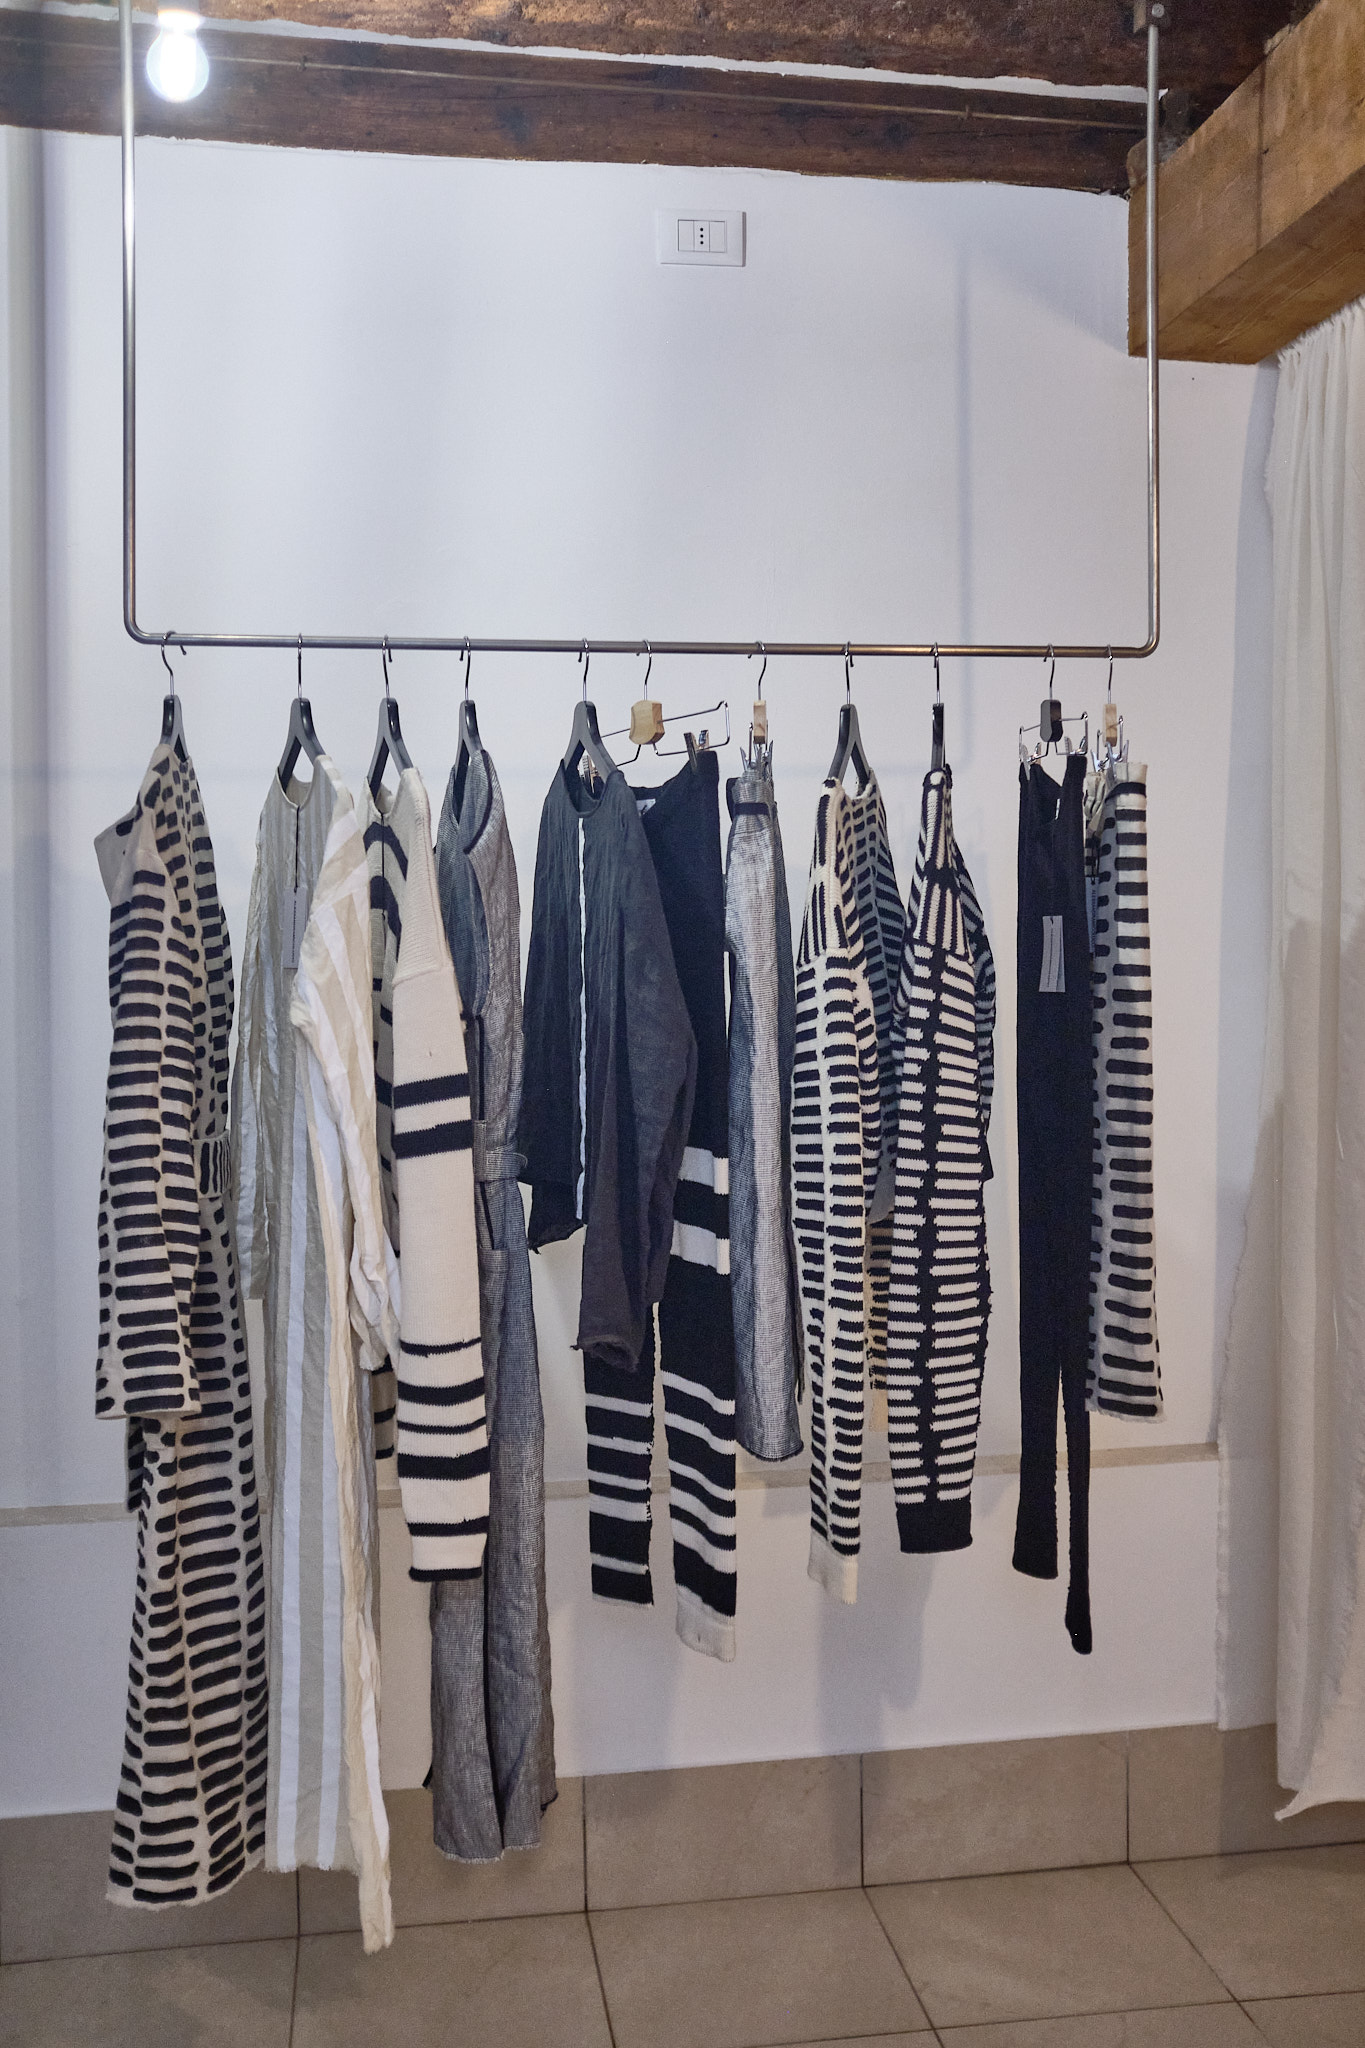 Inside of shop with black and white clothing hanging on a rail